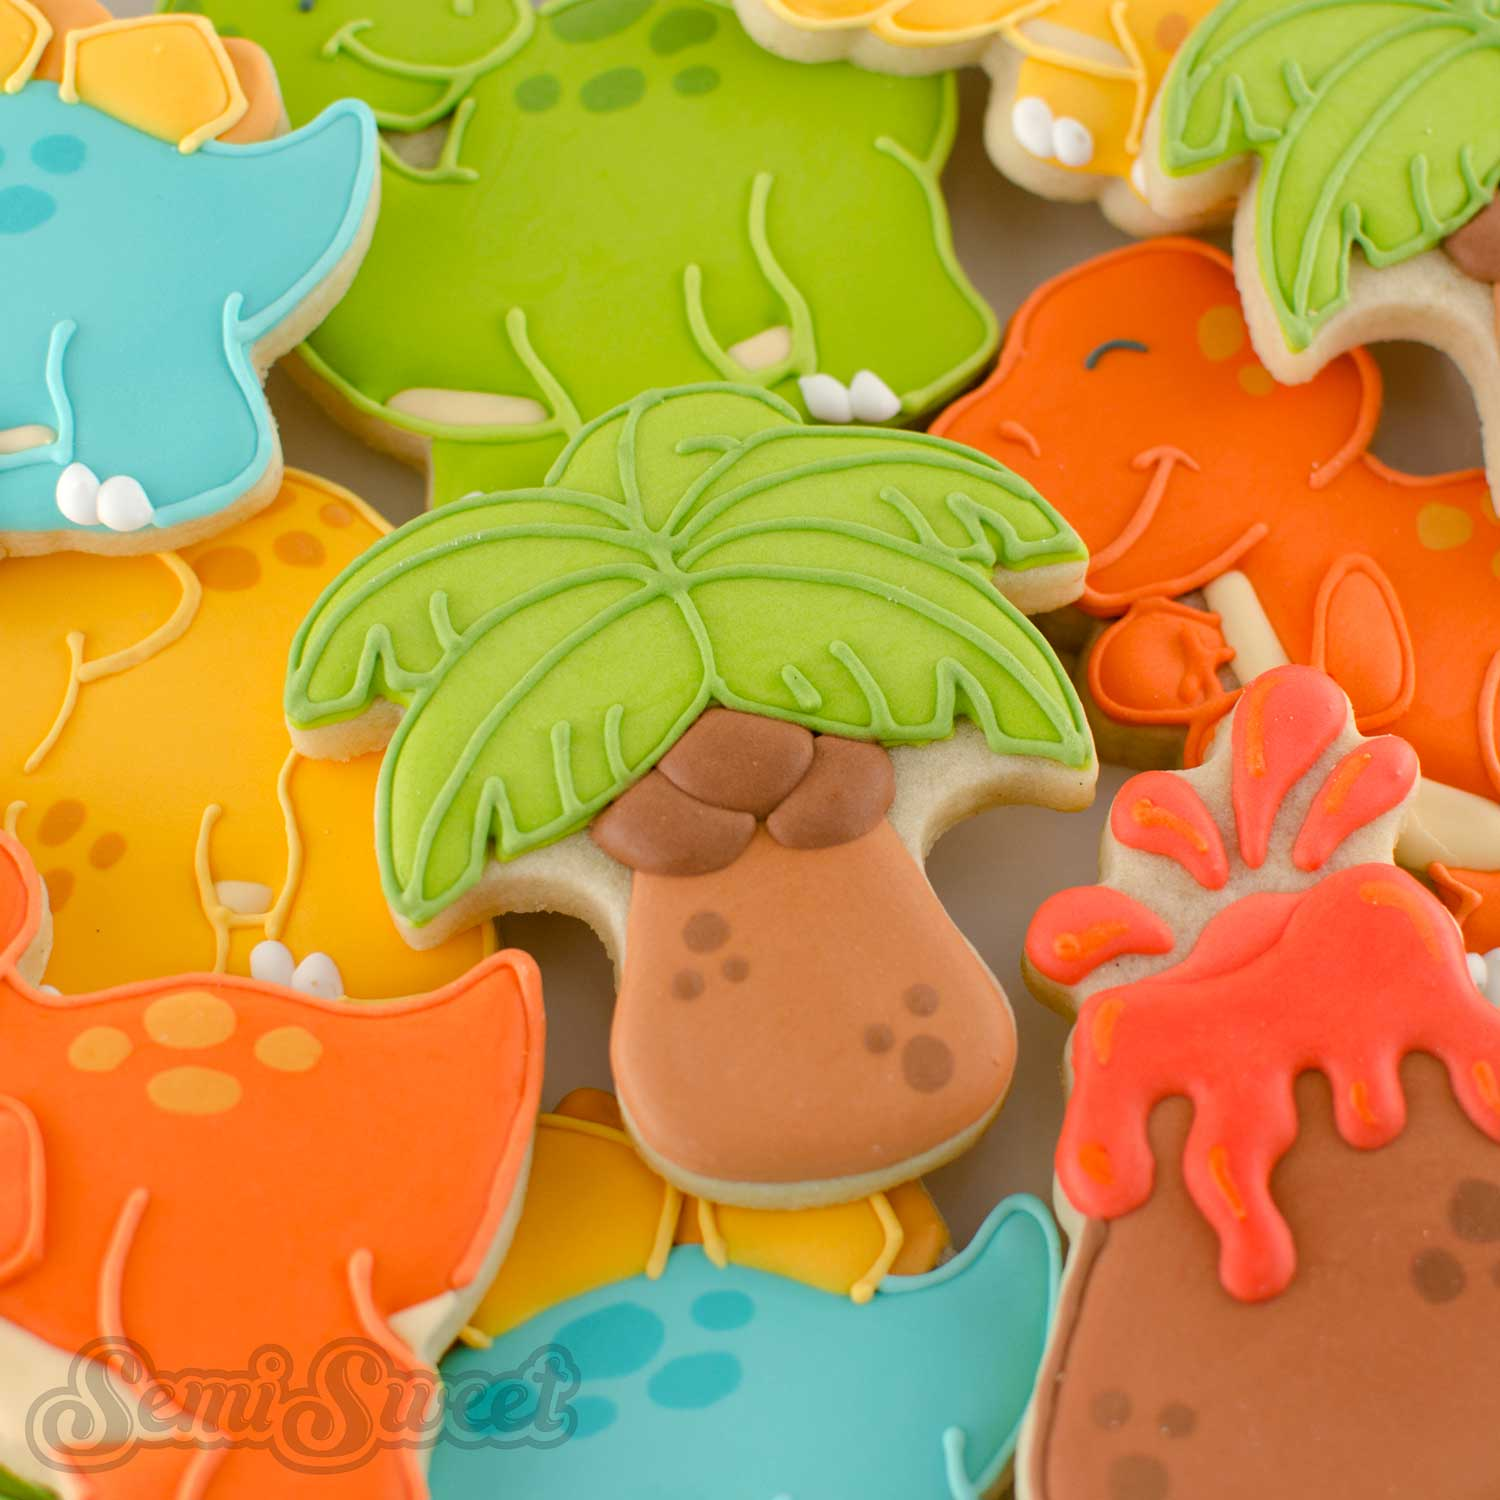 How to Make Sturdy Palm Tree Cookies